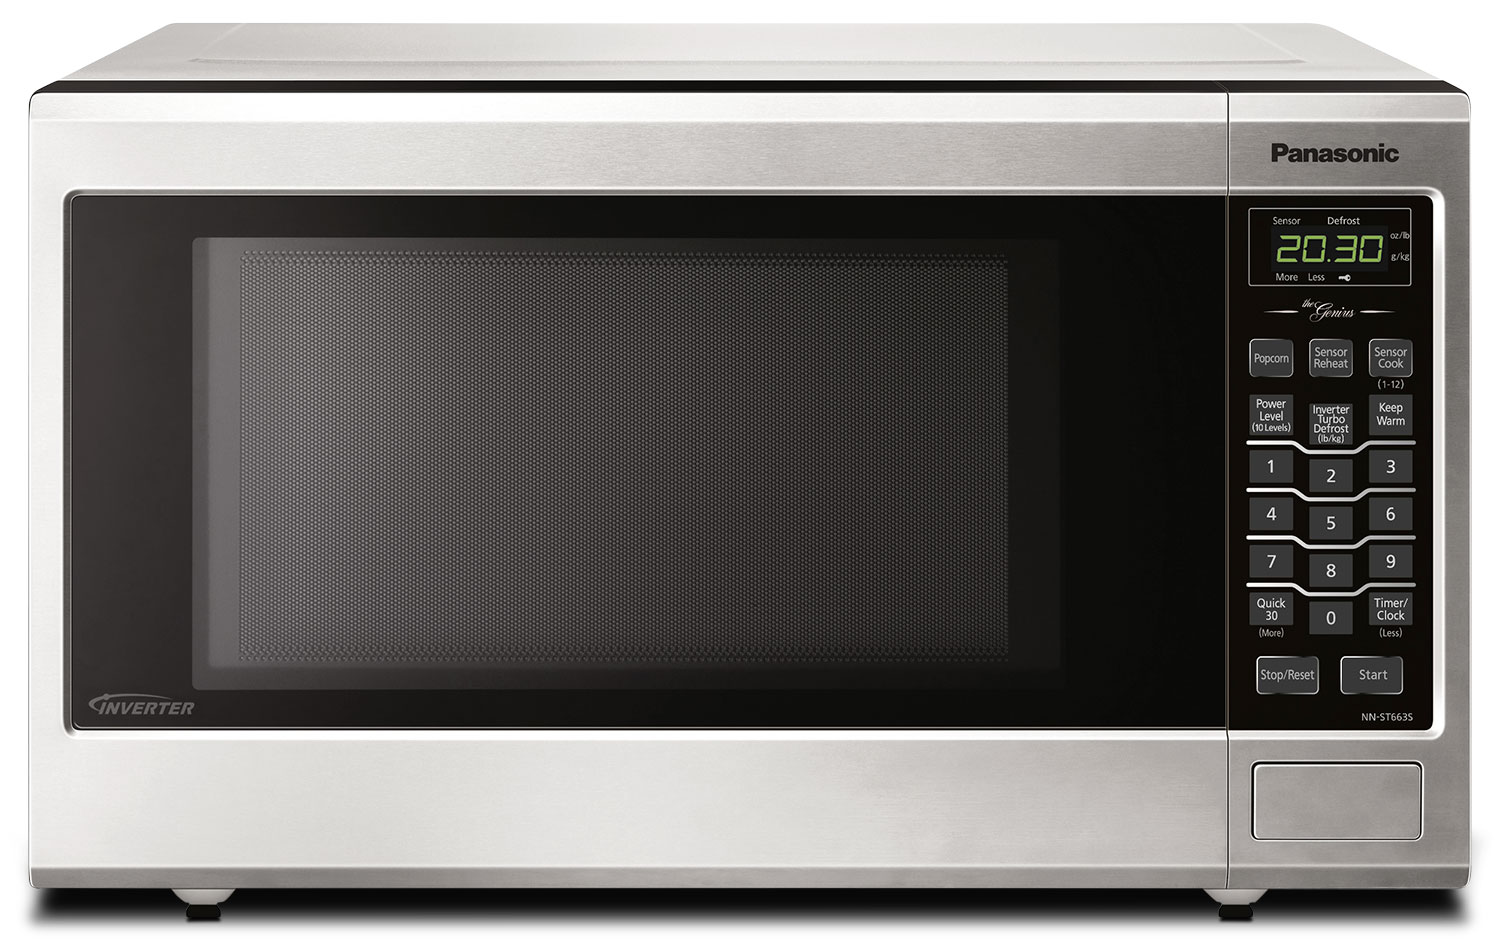 Panasonic 1.2 Cu. Ft. Countertop Microwave – NNST663SC